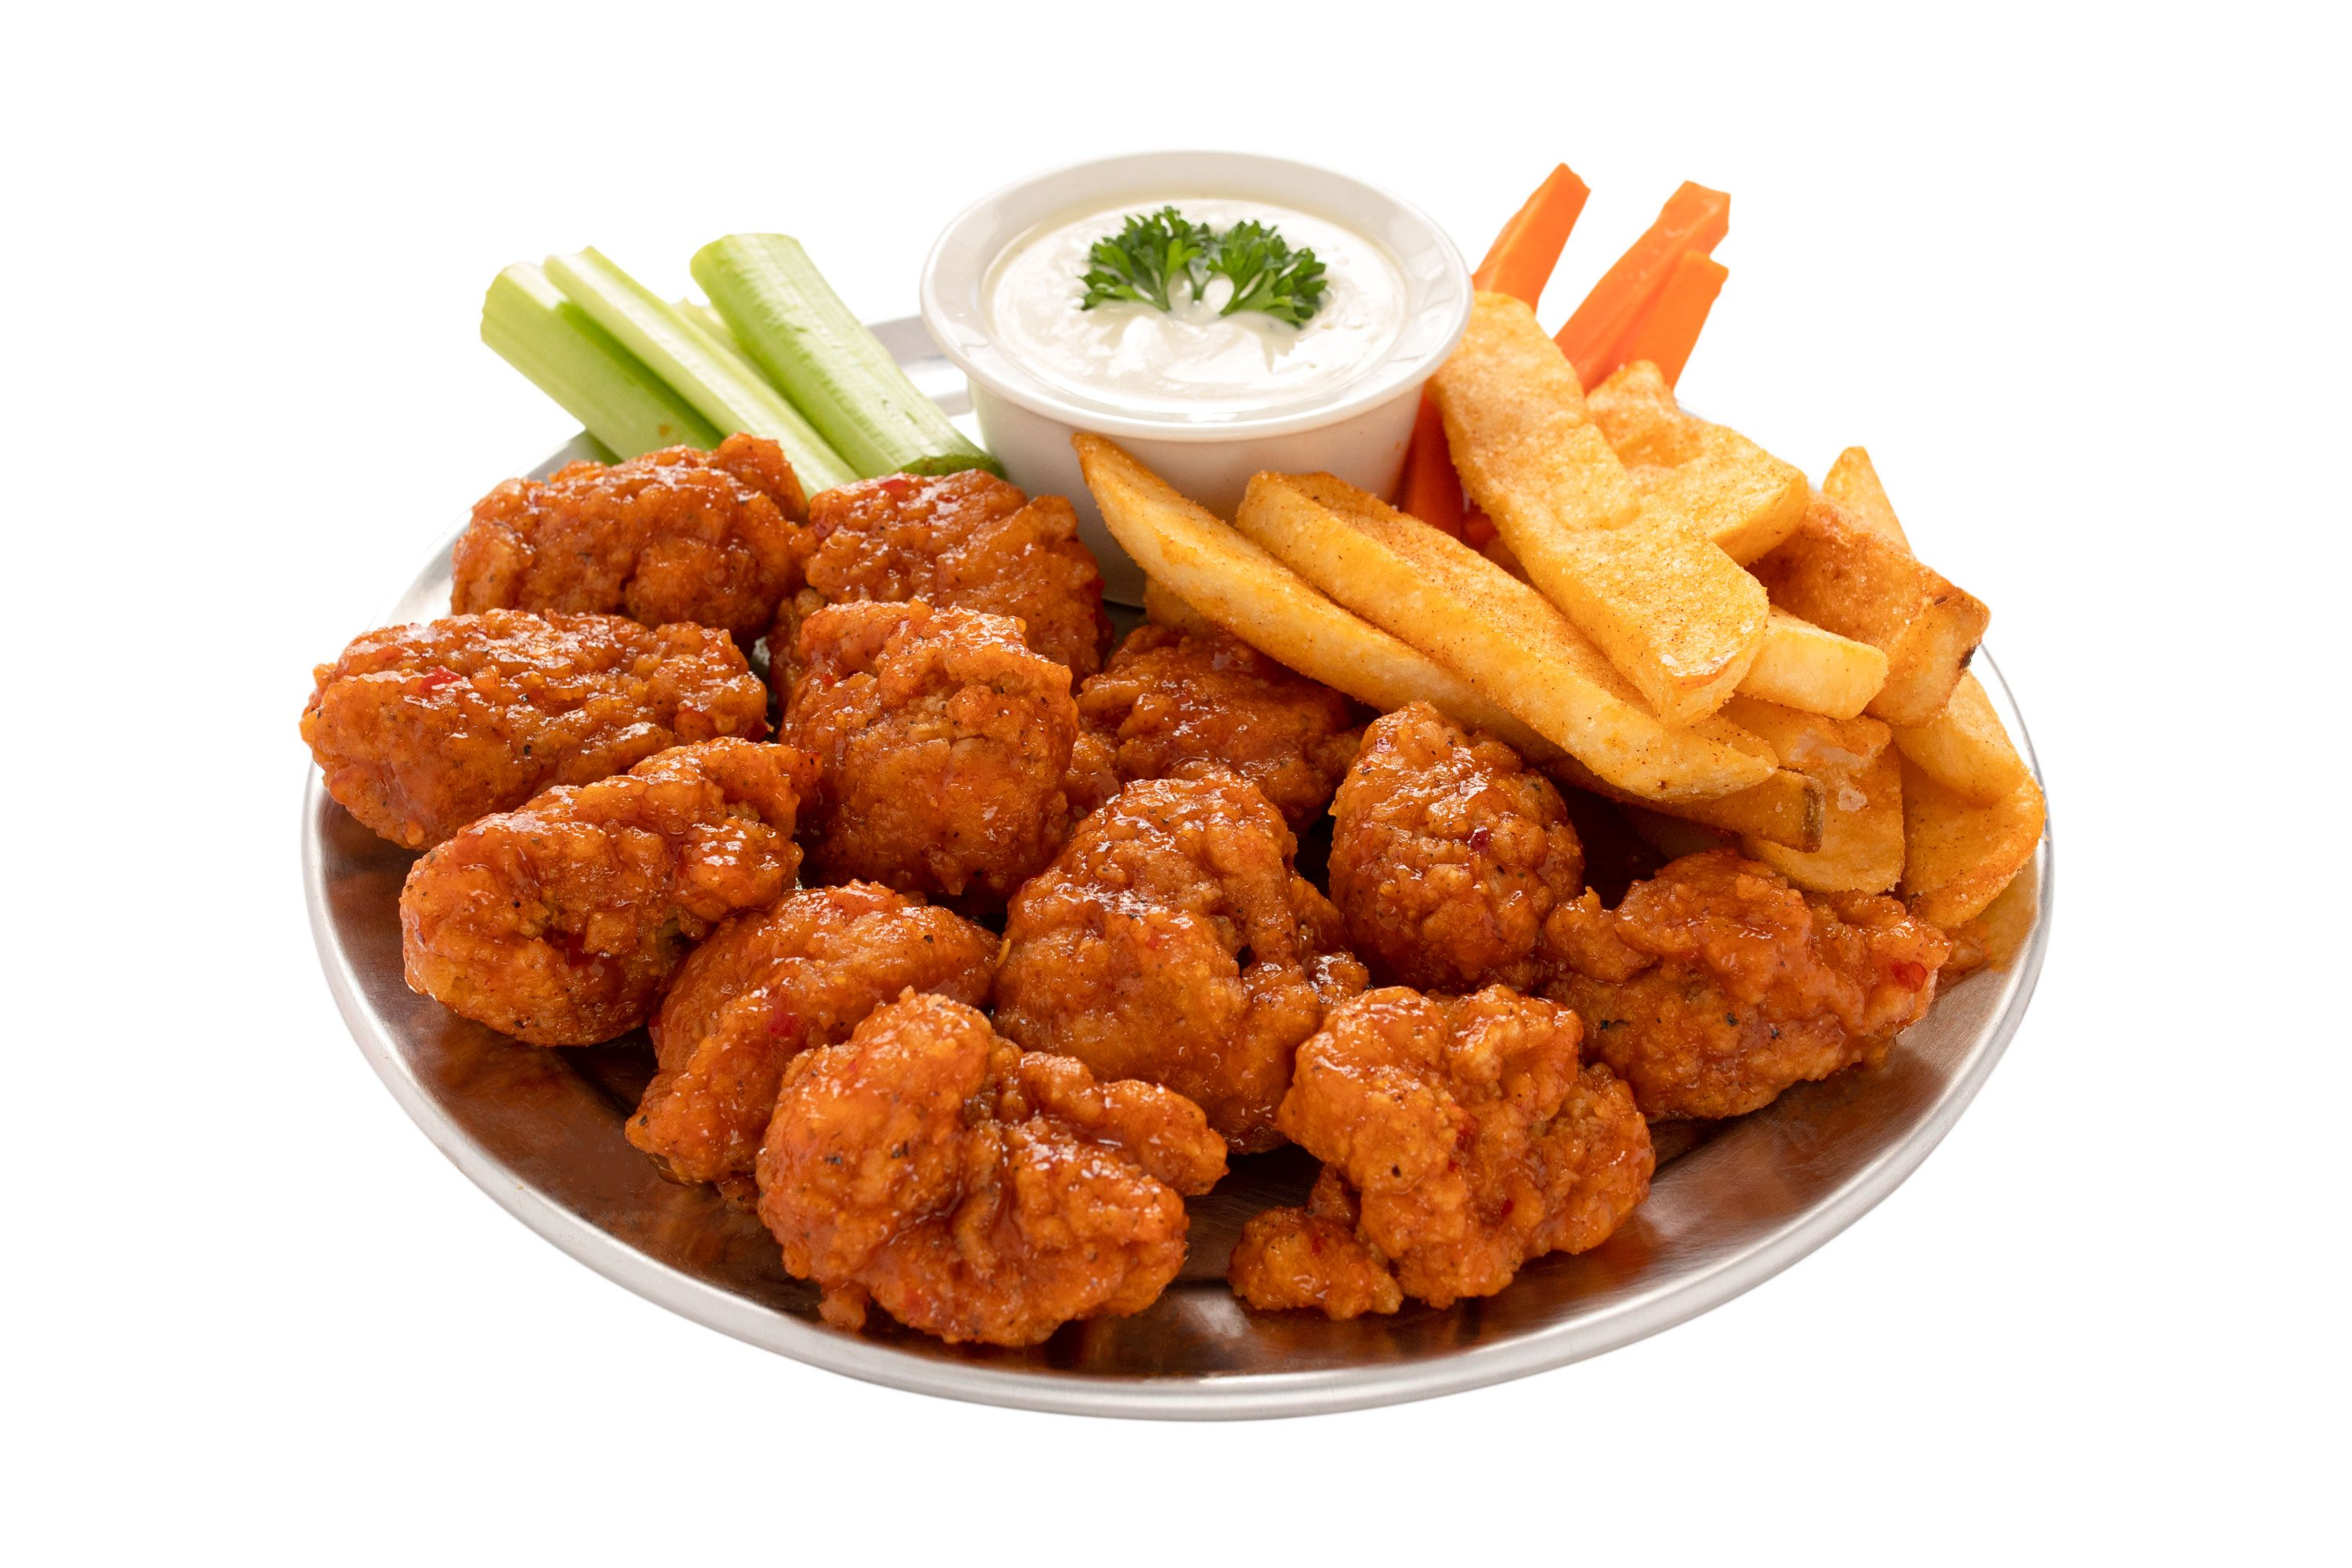 Large boneless wings